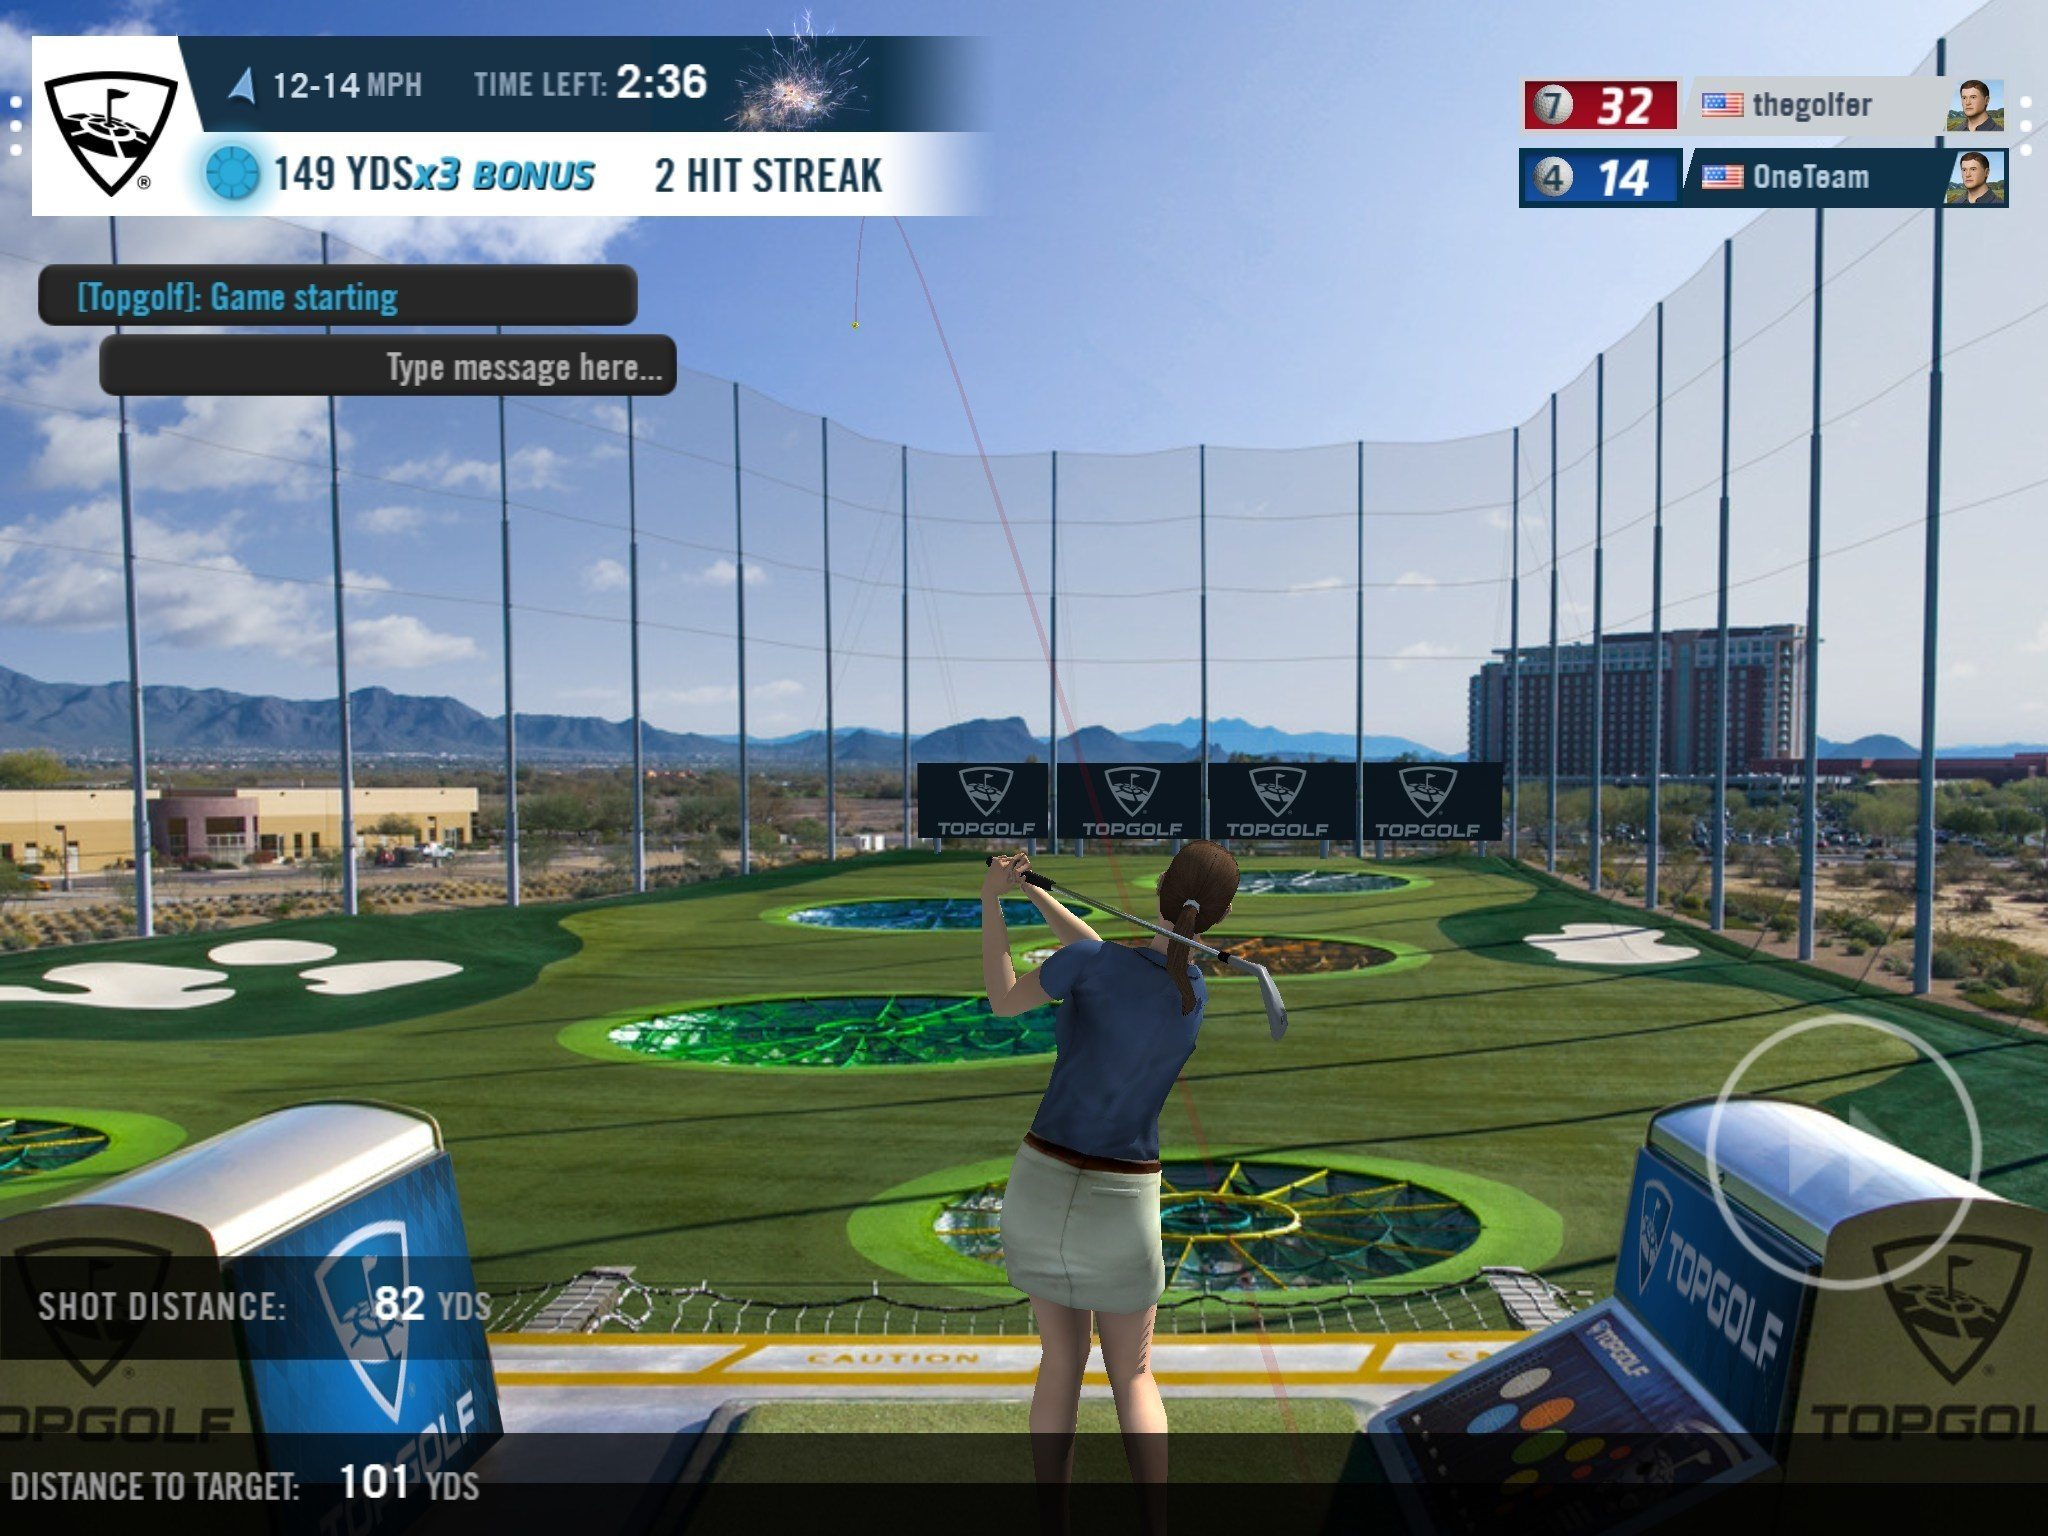 "<strong><span class=""xn-location"">DALLAS </span></strong>-- Anyone in the world can now play <em><a href=""http://www.topgolf.com/"" target=""_blank"" rel=""nofollow""><b>Topgolf</b></a></em> on the go, whenever they want, in the <a href=""https://www.wgt.com/"" target=""_blank"" rel=""nofollow"">WGT Golf</a> mobile app. <em><strong>Topgolf,</strong></em> a global leader in sports entertainment, has integrated its social multi-player target-oriented game format with stunning views of its Scottsdale venue to offer a realistic Topgolf experience for players online.  WGT Golf, acquired by <em><strong>Topgolf</strong></em> in January, is the world's most popular digital golf gaming community, with more than 14 million players worldwide. Players can access the games through desktop, tablet, and iOS and Android apps. <blockquote>""Offering the <em><strong>Topgolf</strong></em> experience in the WGT Golf app instantly provides millions of players a new avenue to experience and connect with Topgolf,"" said Topgolf President of Media and WGT Co-Founder YuChiang Cheng. ""It was our goal to build a game that is casual to play yet hard to master and that brings people together to share in a fun experience and make new friends.""</blockquote> In the <em><strong>Topgolf</strong></em> game on WGT Golf, players chat in real time and play against people from all over the world. Points are scored based on distance and relative position near the targets, with added opportunities for bonus points and challenges. Each game lasts approximately five minutes and allows for up to six players to compete simultaneously and see each other's shots fly through the air. Weekly leaderboards track player rankings, and more competition modes will be added on a regular basis.  Scottsdale is the first <em><strong>Topgolf</strong></em> venue recreated virtually using WGT's patented image and terrain-mapping technology. The WGT team laser-scanned the venue down to 3mm accuracy while capturing thousands of ultra-HD photographs to create a true-to-life experience for Topgolf fans. <blockquote>""Since day one, <em><strong>Topgolf's</strong></em> imaginative use of technology has created more ways to enjoy the game of golf, and we will continue to evolve where and how people can play the game – both offline and online,"" Cheng said.</blockquote> In the first week since the <em><strong>Topgolf</strong></em> format was added to WGT Golf, more than 400,000 individual games were played and 5.3 million virtual golf balls were hit. Topgolf plans to add new game formats, including new Topgolf challenges, to the WGT Golf platform over time.  <b>About <em>Topgolf</em> </b><strong><em>Topgolf</em></strong> is a global sports entertainment community creating the best times of your life. With 26 venues serving 13 million guests annually and the world's largest digital golf audience, <em><strong>Topgolf</strong></em> has become a go-to destination for fun both in-venue and online. The <em><strong>Topgolf</strong></em> games can be enjoyed by all ages and skill levels, and the microchipped golf balls score themselves, providing players with instant feedback on each shot's accuracy and distance. Each venue features climate-controlled hitting bays for year-round play, a chef-driven food and beverage menu, music and hundreds of HDTVs. Topgolf also brings interactive experiences to the community through its Topgolf U lessons, leagues, The Topgolf Tour, KidZone parties, social and corporate events, and the World Golf Tour (WGT) app. Topgolf's lifestyle division, Topgolf Media, creates advanced media content and cultivates partnerships and sponsorships that enhance the Topgolf fan experience. To learn more about <em><strong>Topgolf,</strong></em> follow @Topgolf or visit <a href=""http://www.topgolf.com/"" target=""_blank"" rel=""nofollow"">www.topgolf.com</a>."